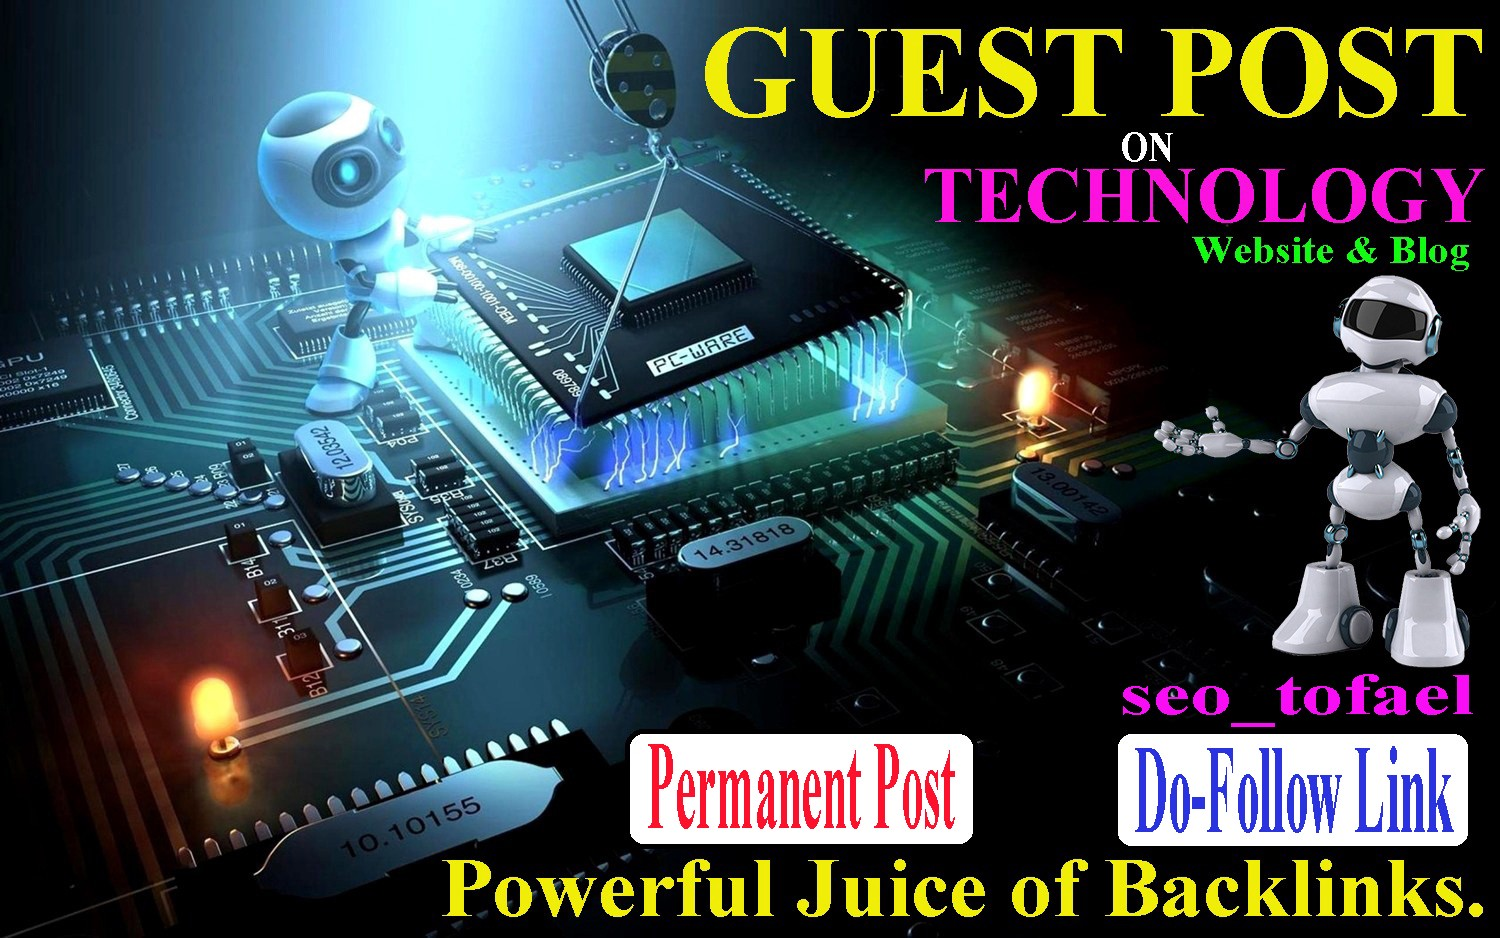 I Will Publish Tech Guest Post On High Authority Tech Website